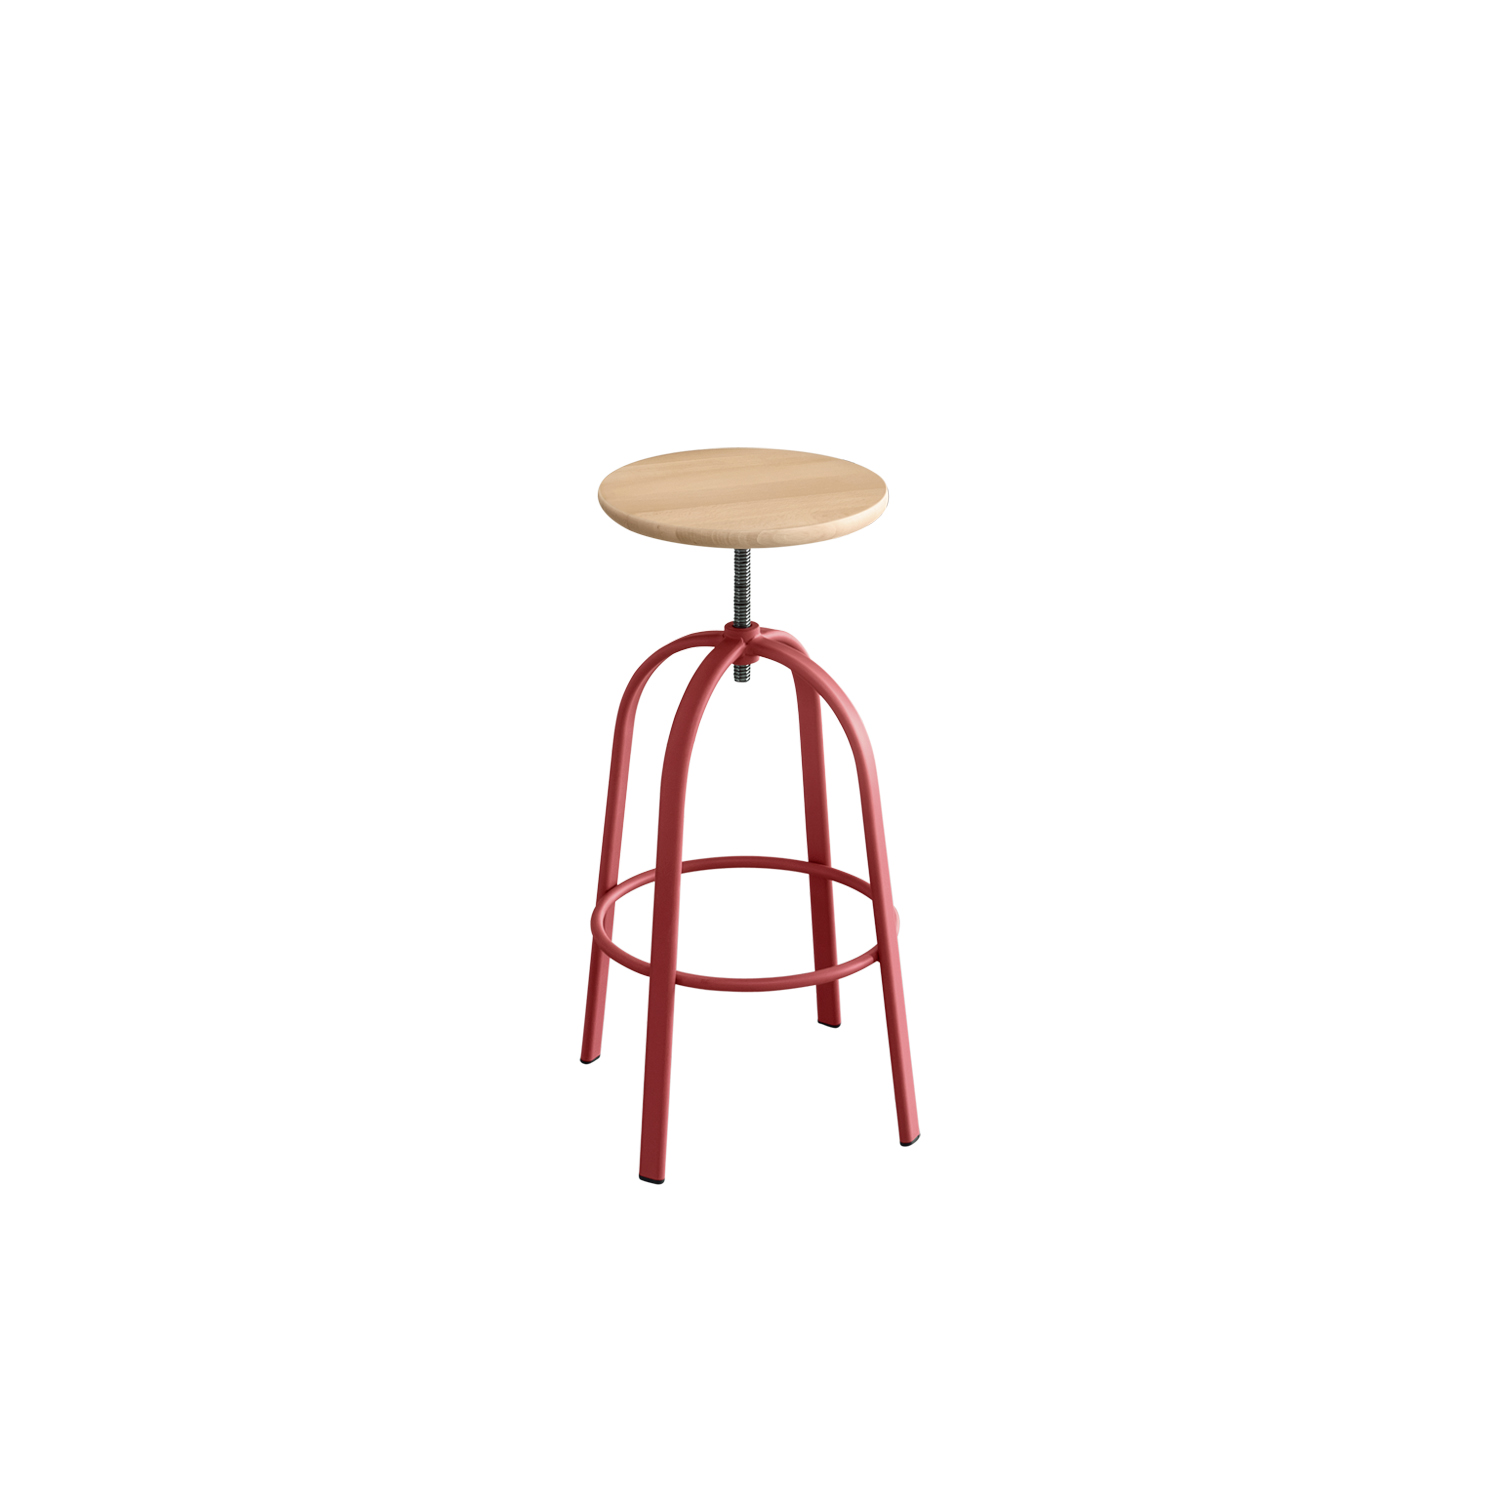 Ferrovitos Stool - Drawing its inspiration from the stools used in the past in Italian schools, this essential item knows when to appear discreet and when to dare a brightly coloured frame.